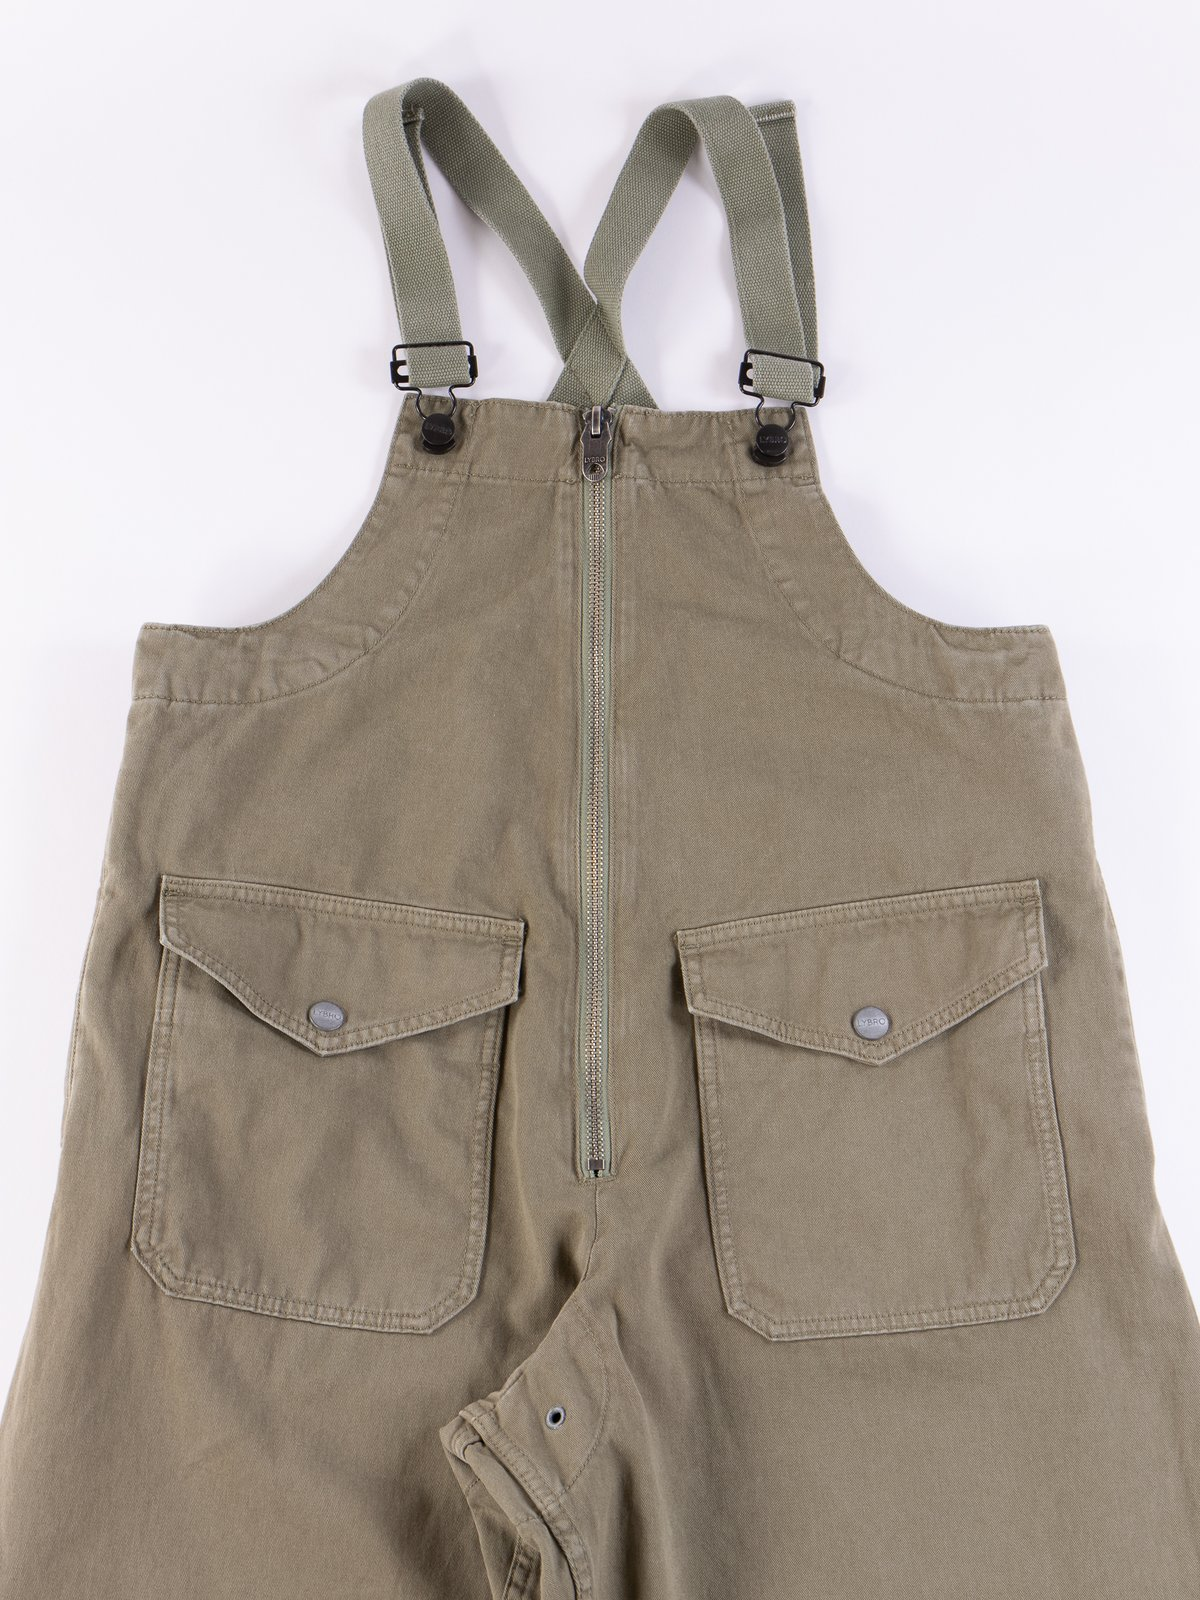 Lybro Washed Army Deck Waders - Image 3